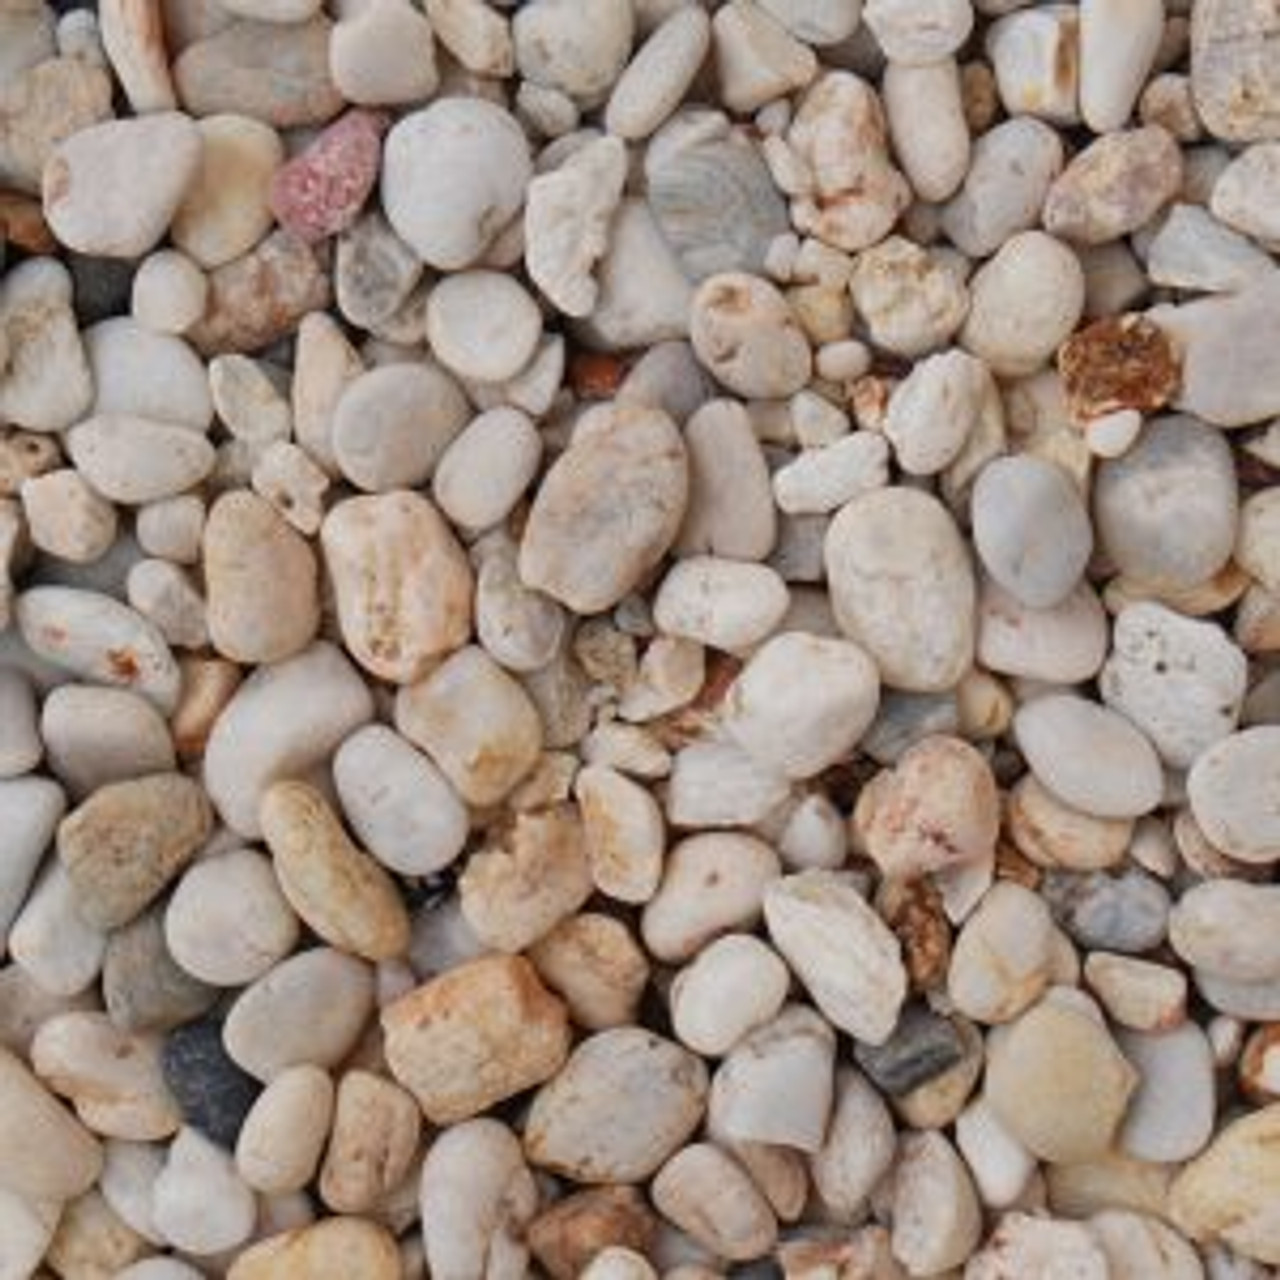 Heritage Stone Apricot 20mm Dumpy bag  -  LOCAL DELIVERY ONLY